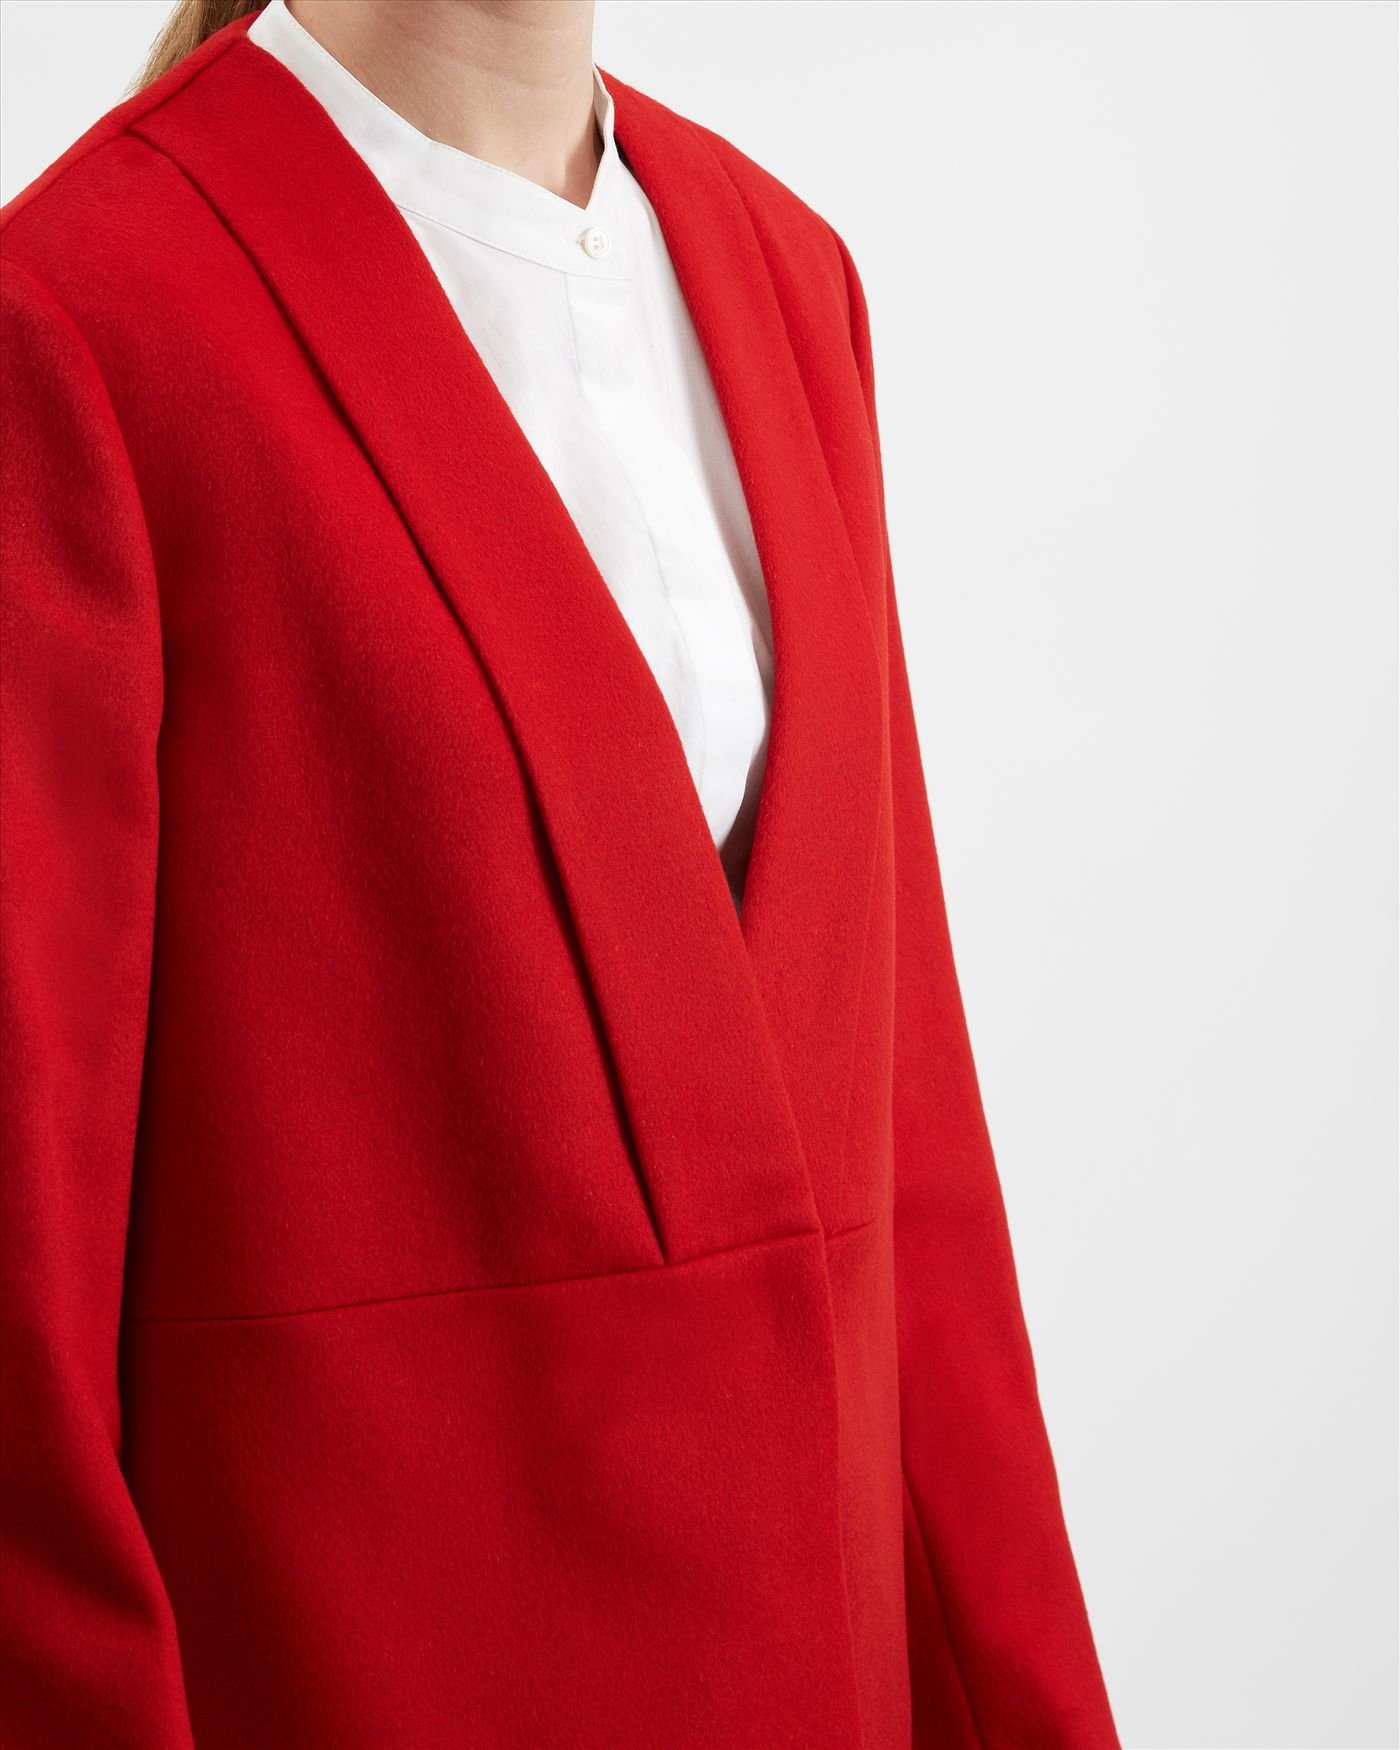 Jaeger Wool Folded Collar Short Coat in Red   Lyst